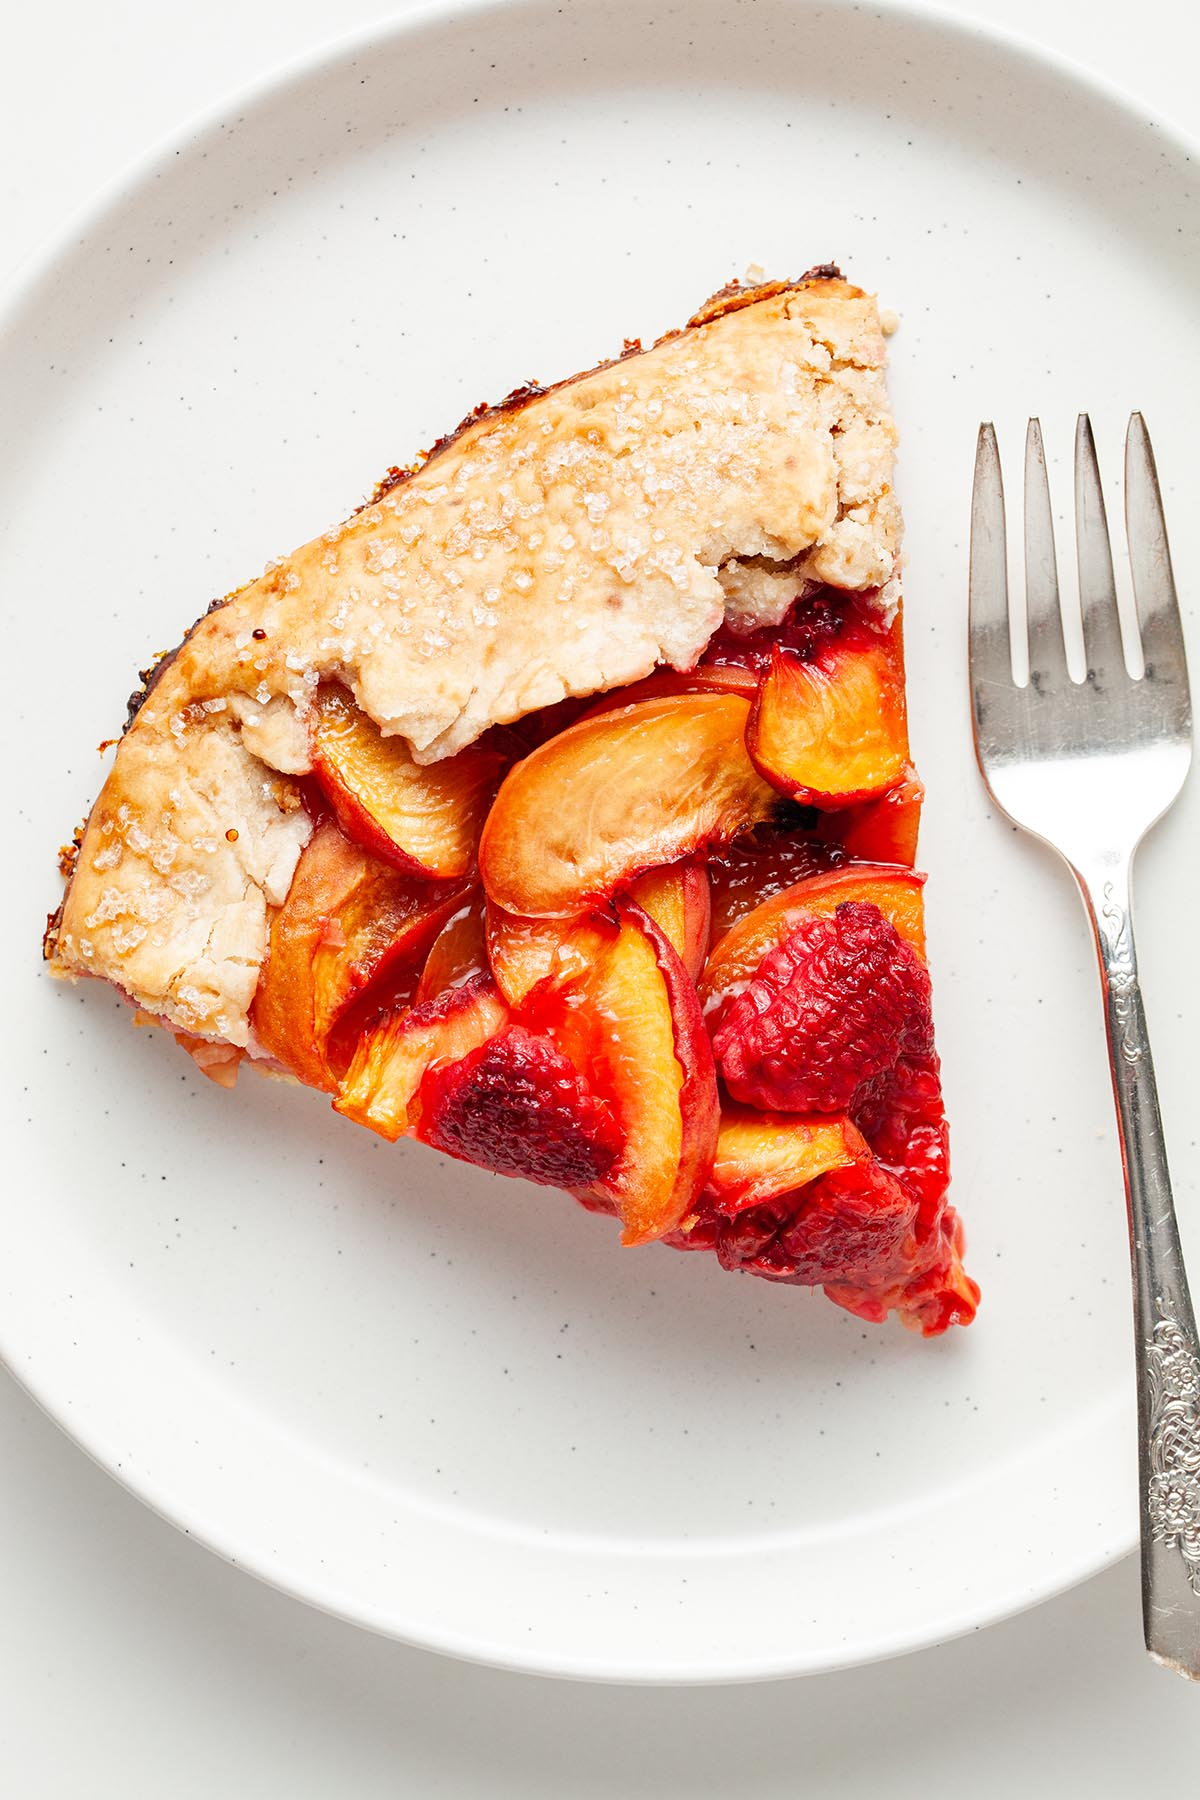 A slice of vegan peach galette on a plate with a fork.